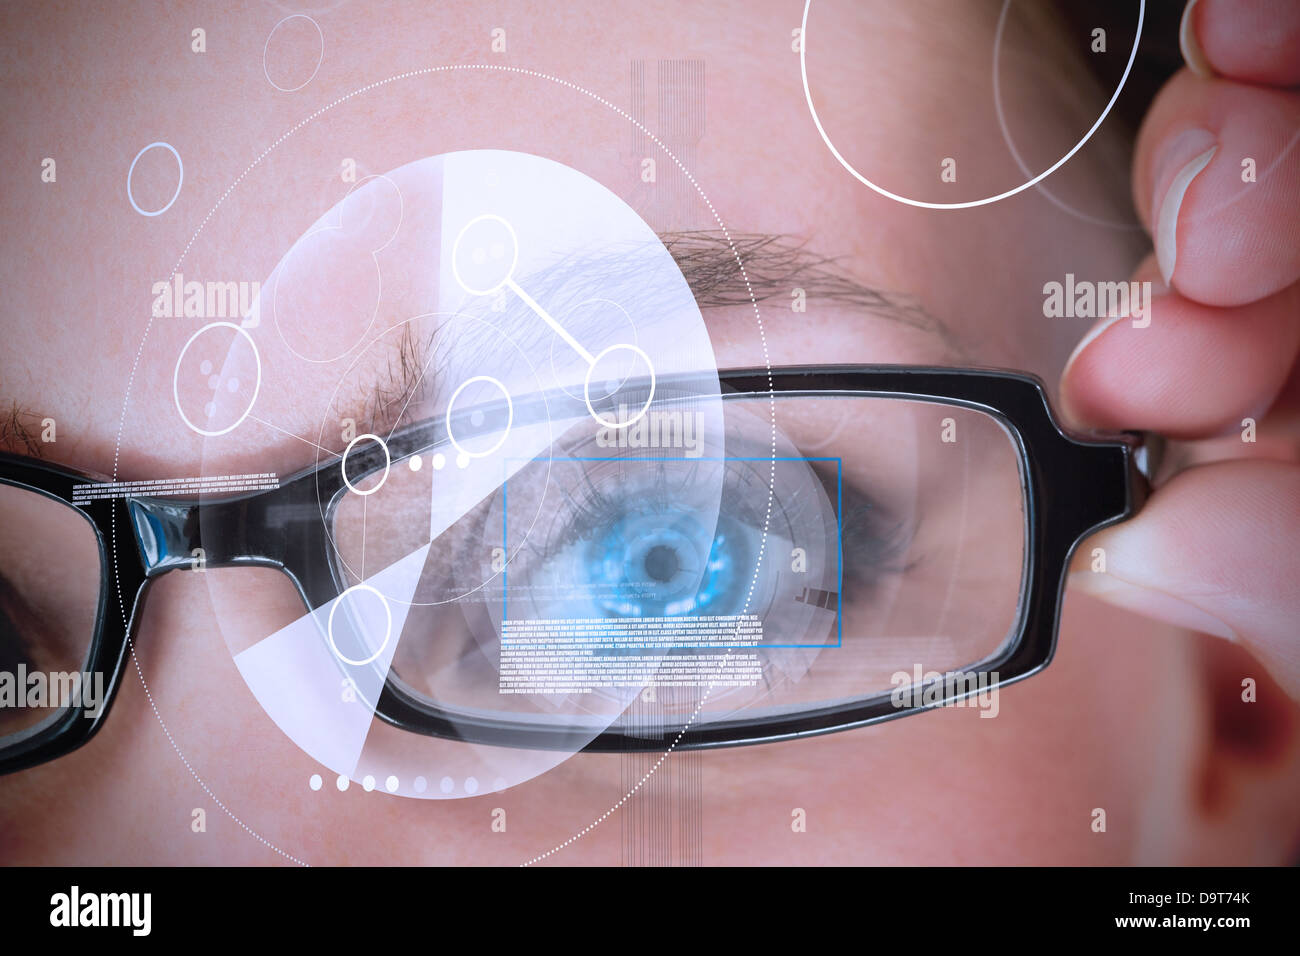 Womans eye being scanned for authorization - Stock Image